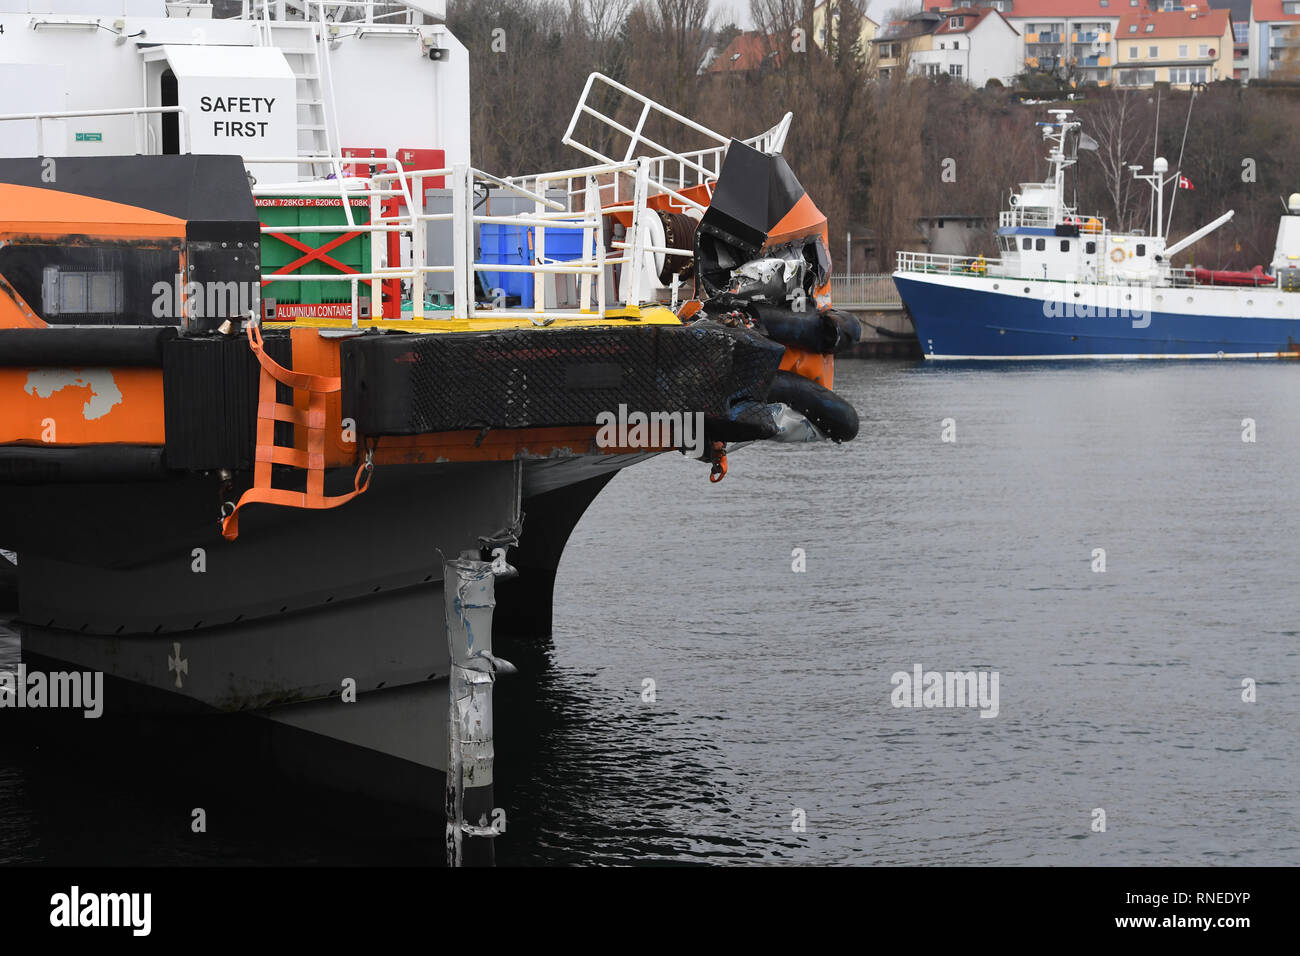 Sassnitz, Germany  19th Feb, 2019  The offshore utility